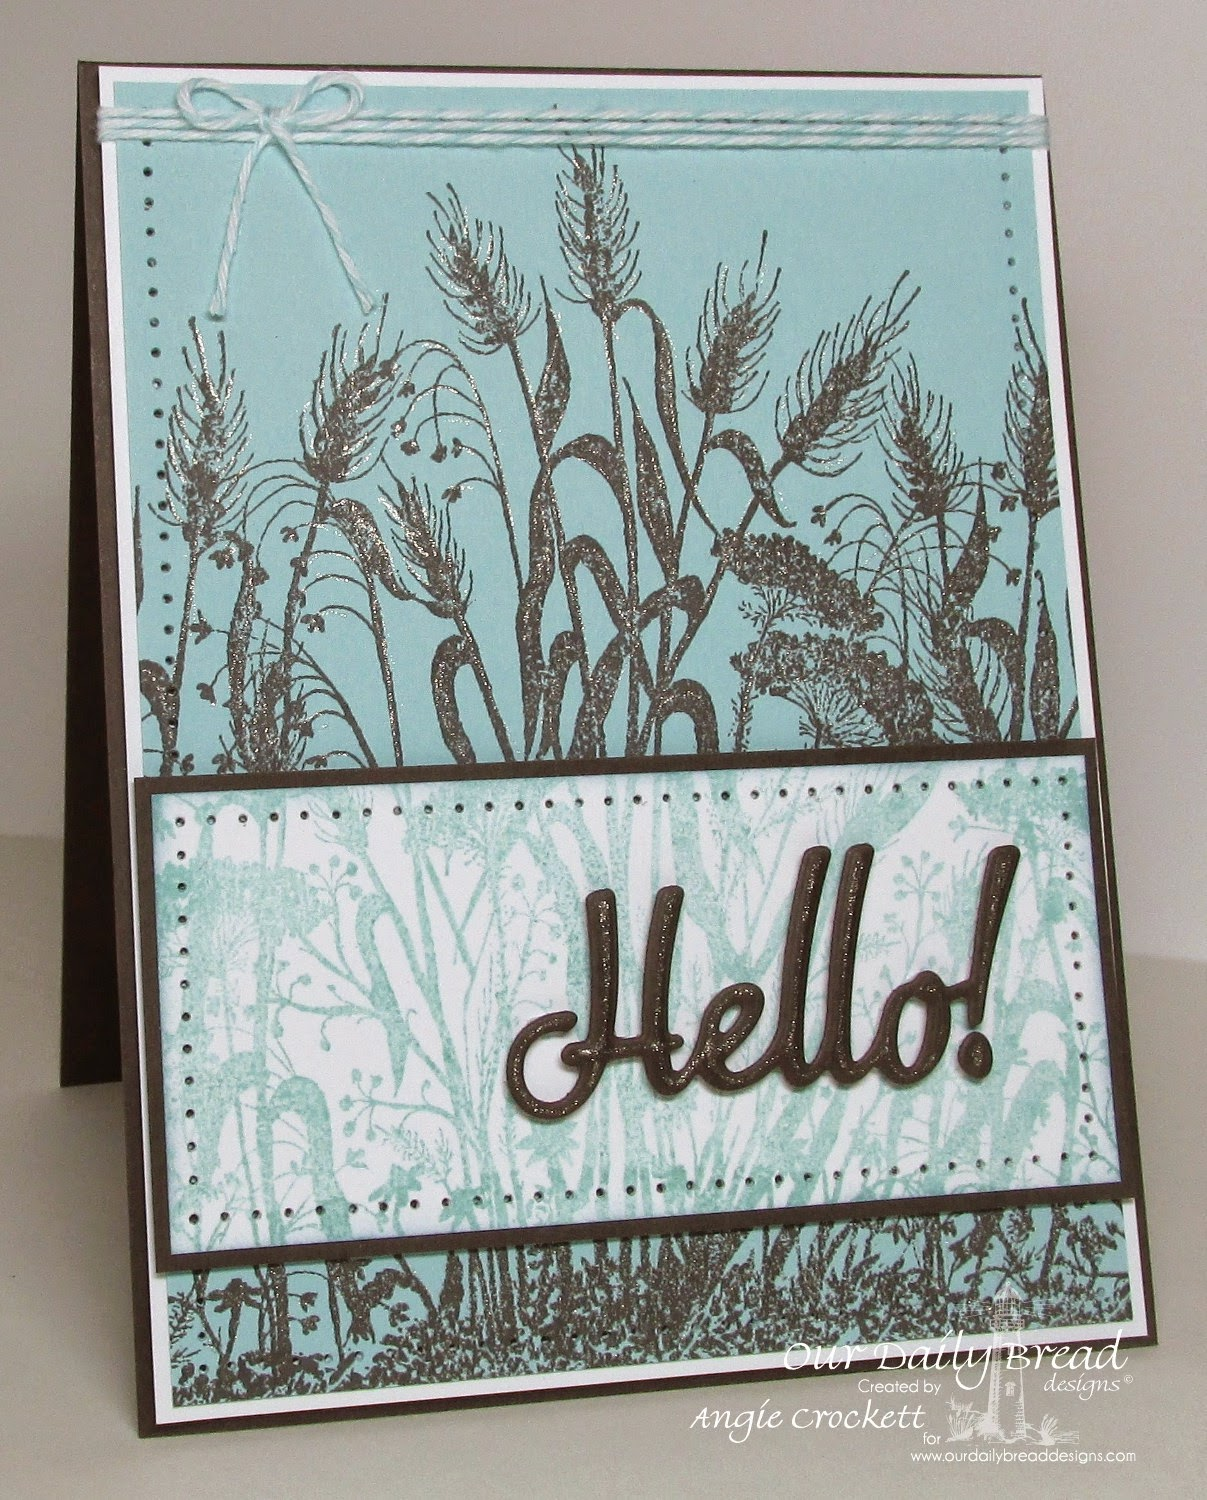 ODBD Custom Hello Die, ODBD Wildflower Silhouette Background, Card Designer Angie Crockett